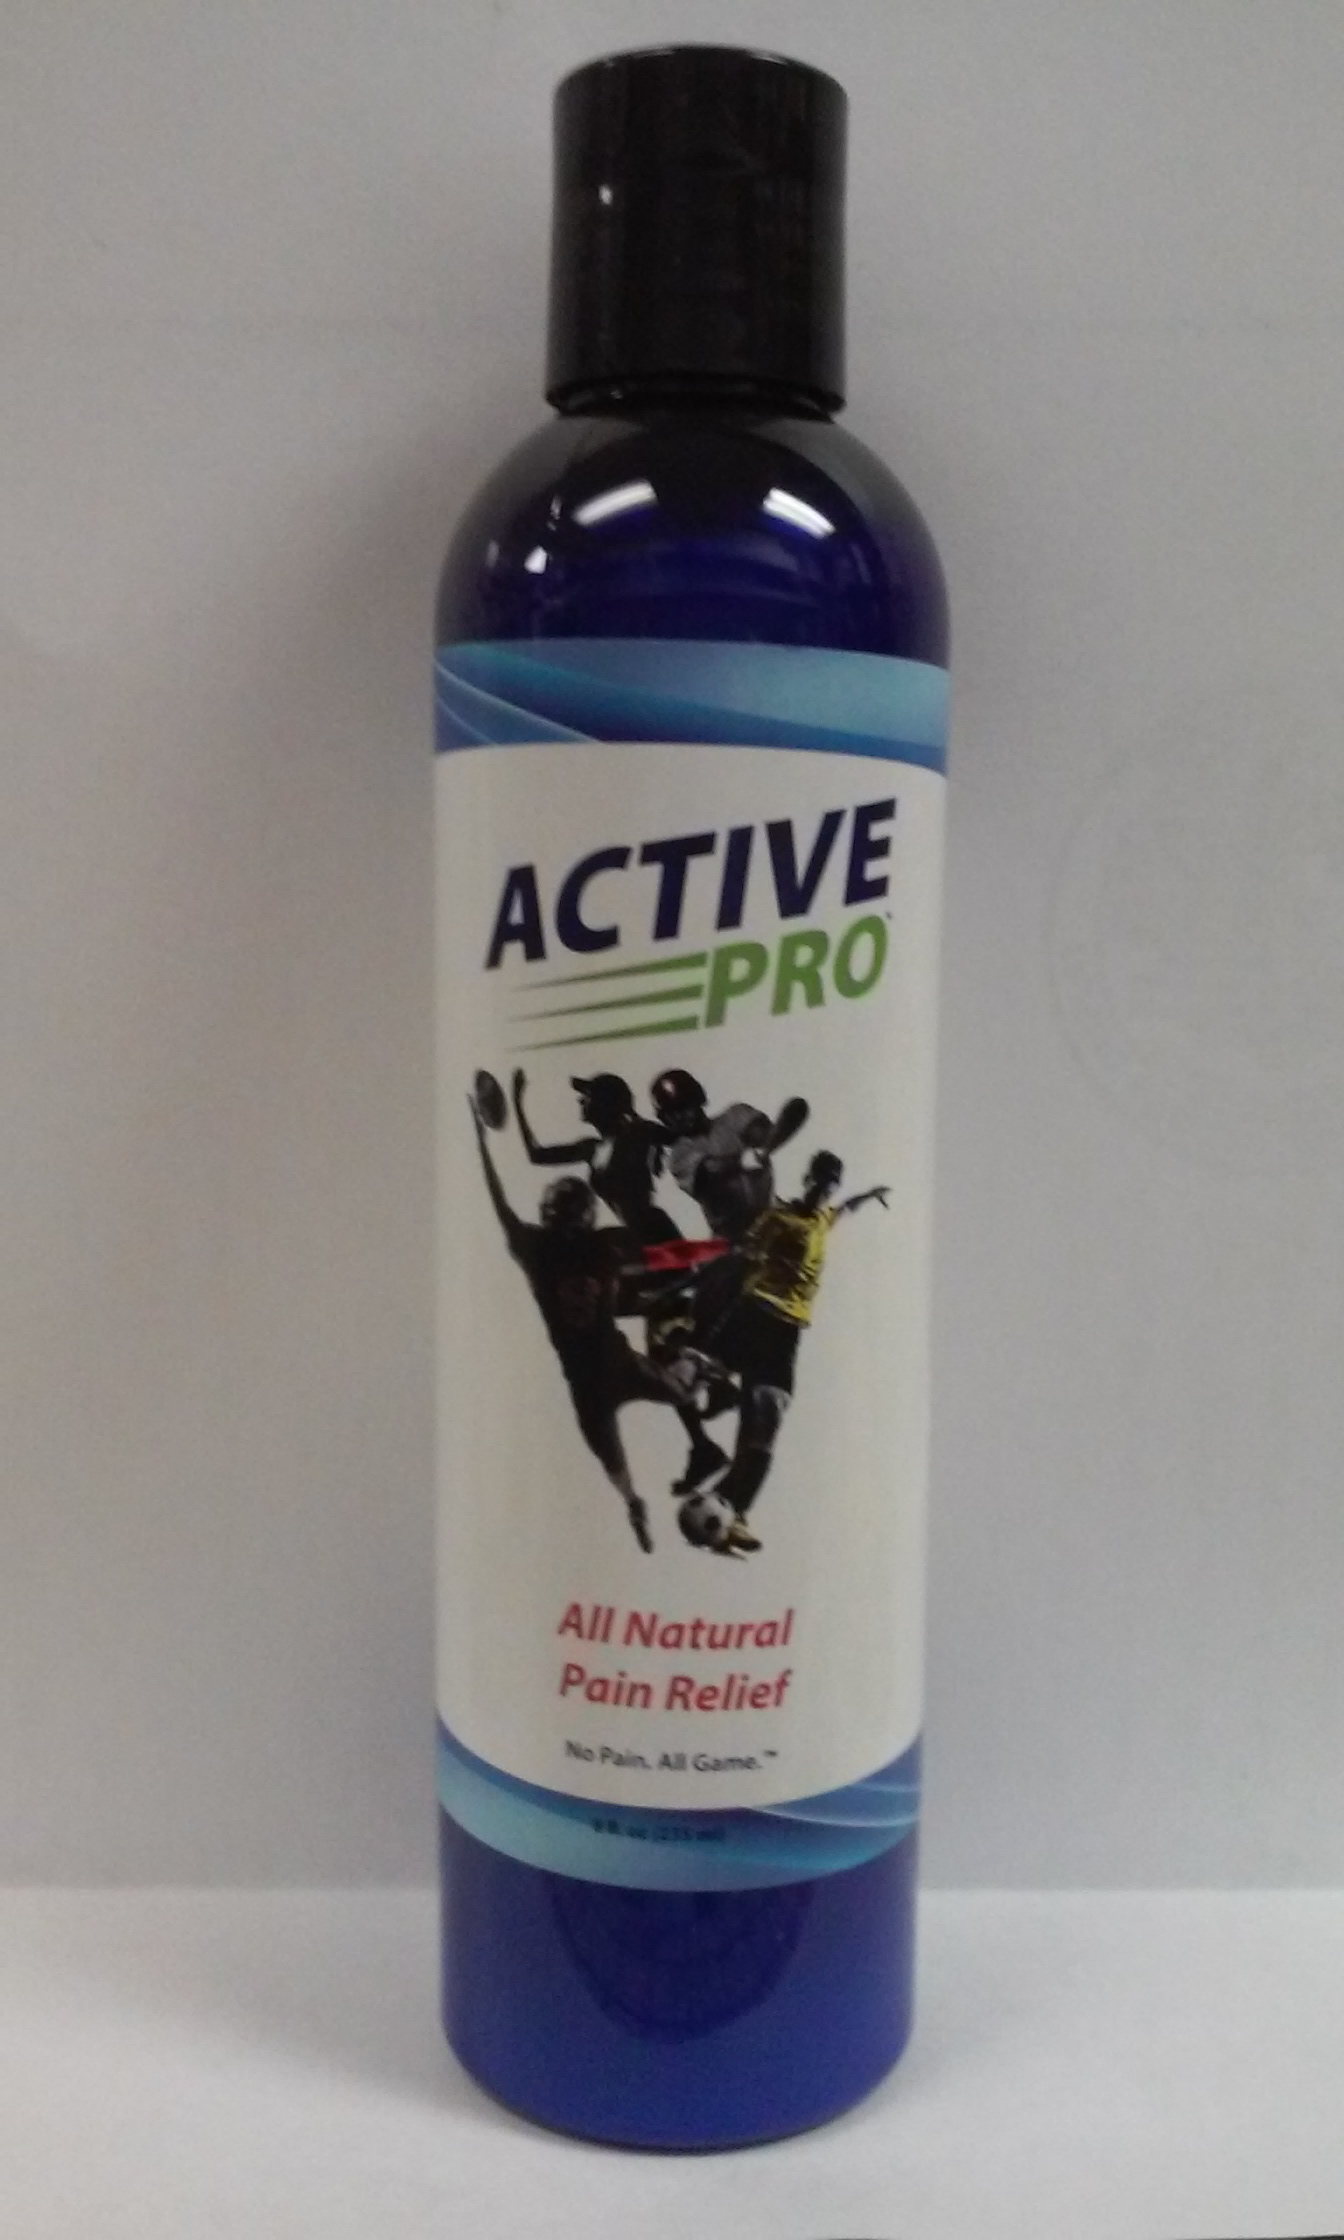 Active Pro Apr All Natural Pain Relief 8oz Healthy